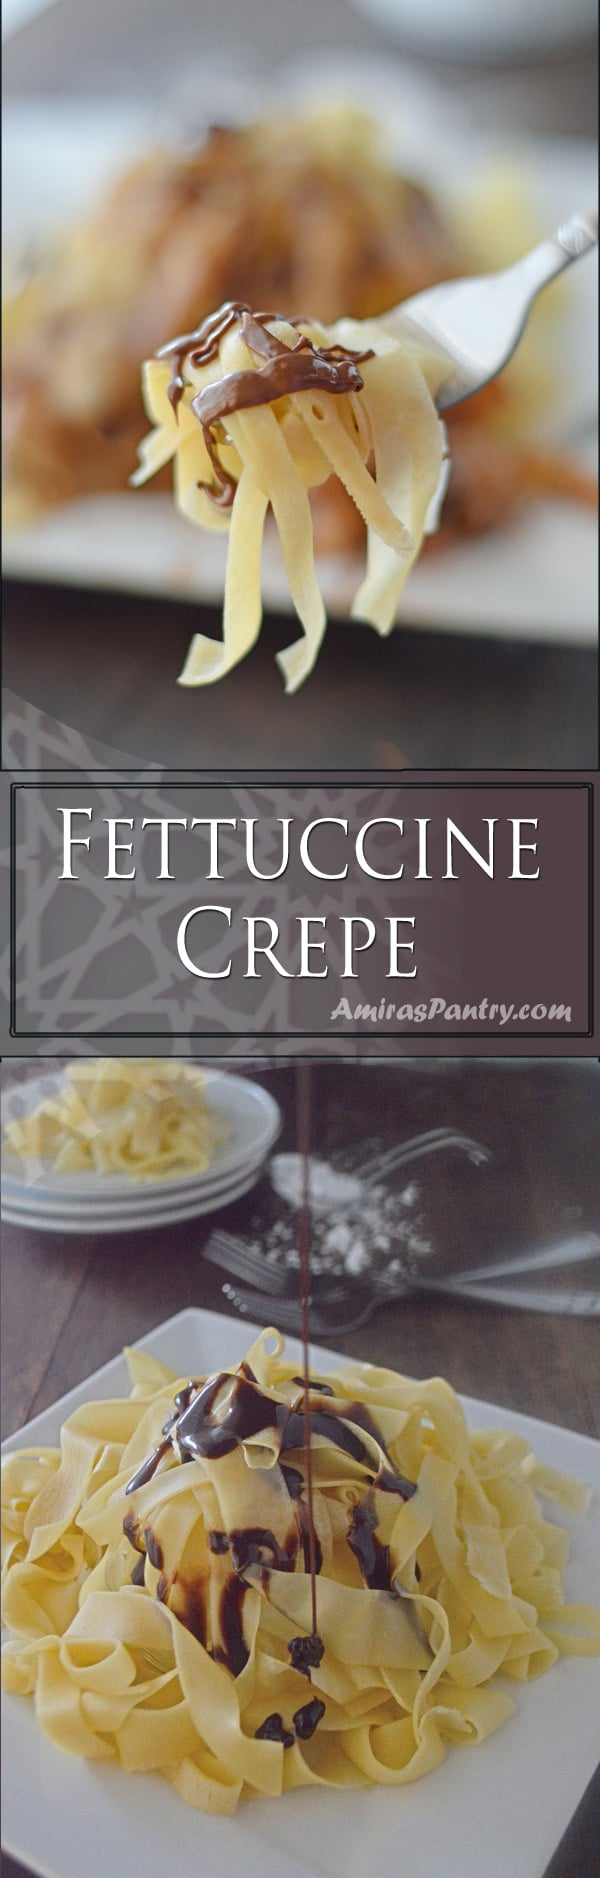 A decadent classic crepe, served with style. These crepes would make a wonderful holiday breakfast and you can top them with so many fun things.